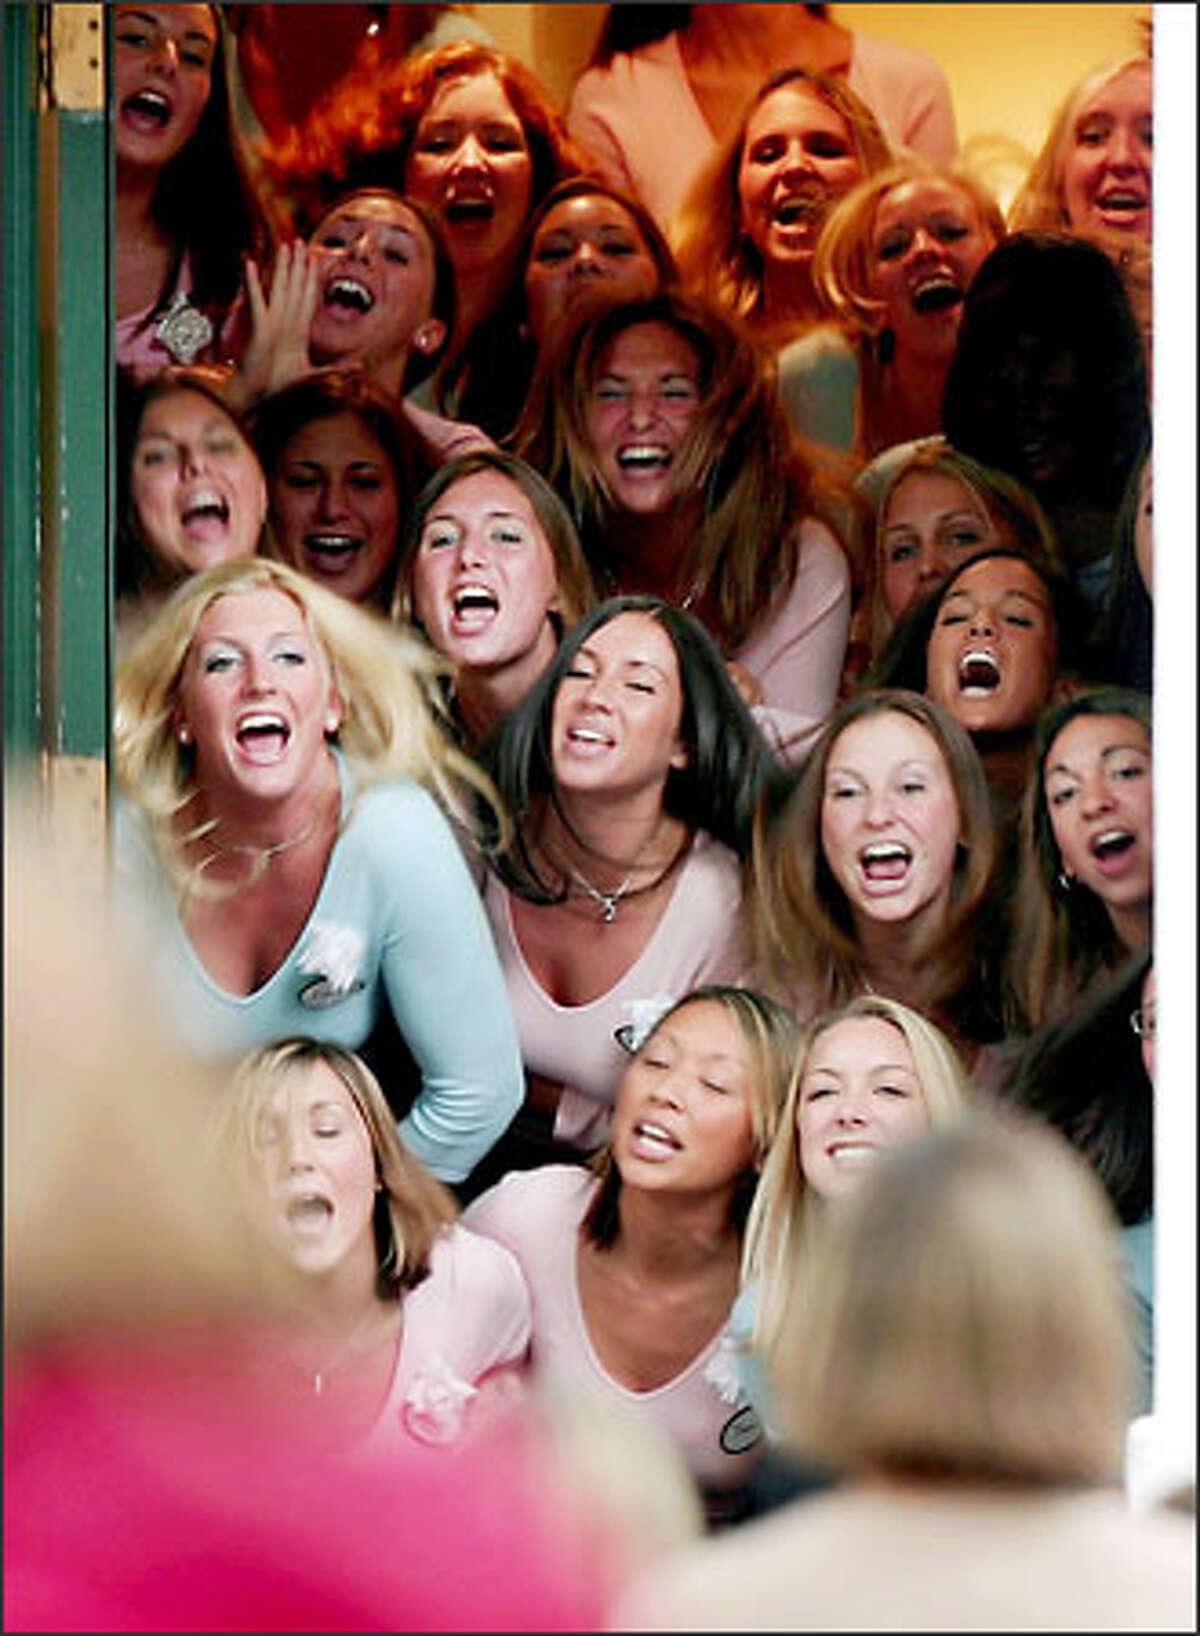 Members of Pi Beta Phi poke their heads out of the front door of their sorority house as they sing and chant to rushees along Greek row at the University of Washington. This is rush week, when students tour sororities and fraternities to see whether Greek life appeals to them.Trujillo: